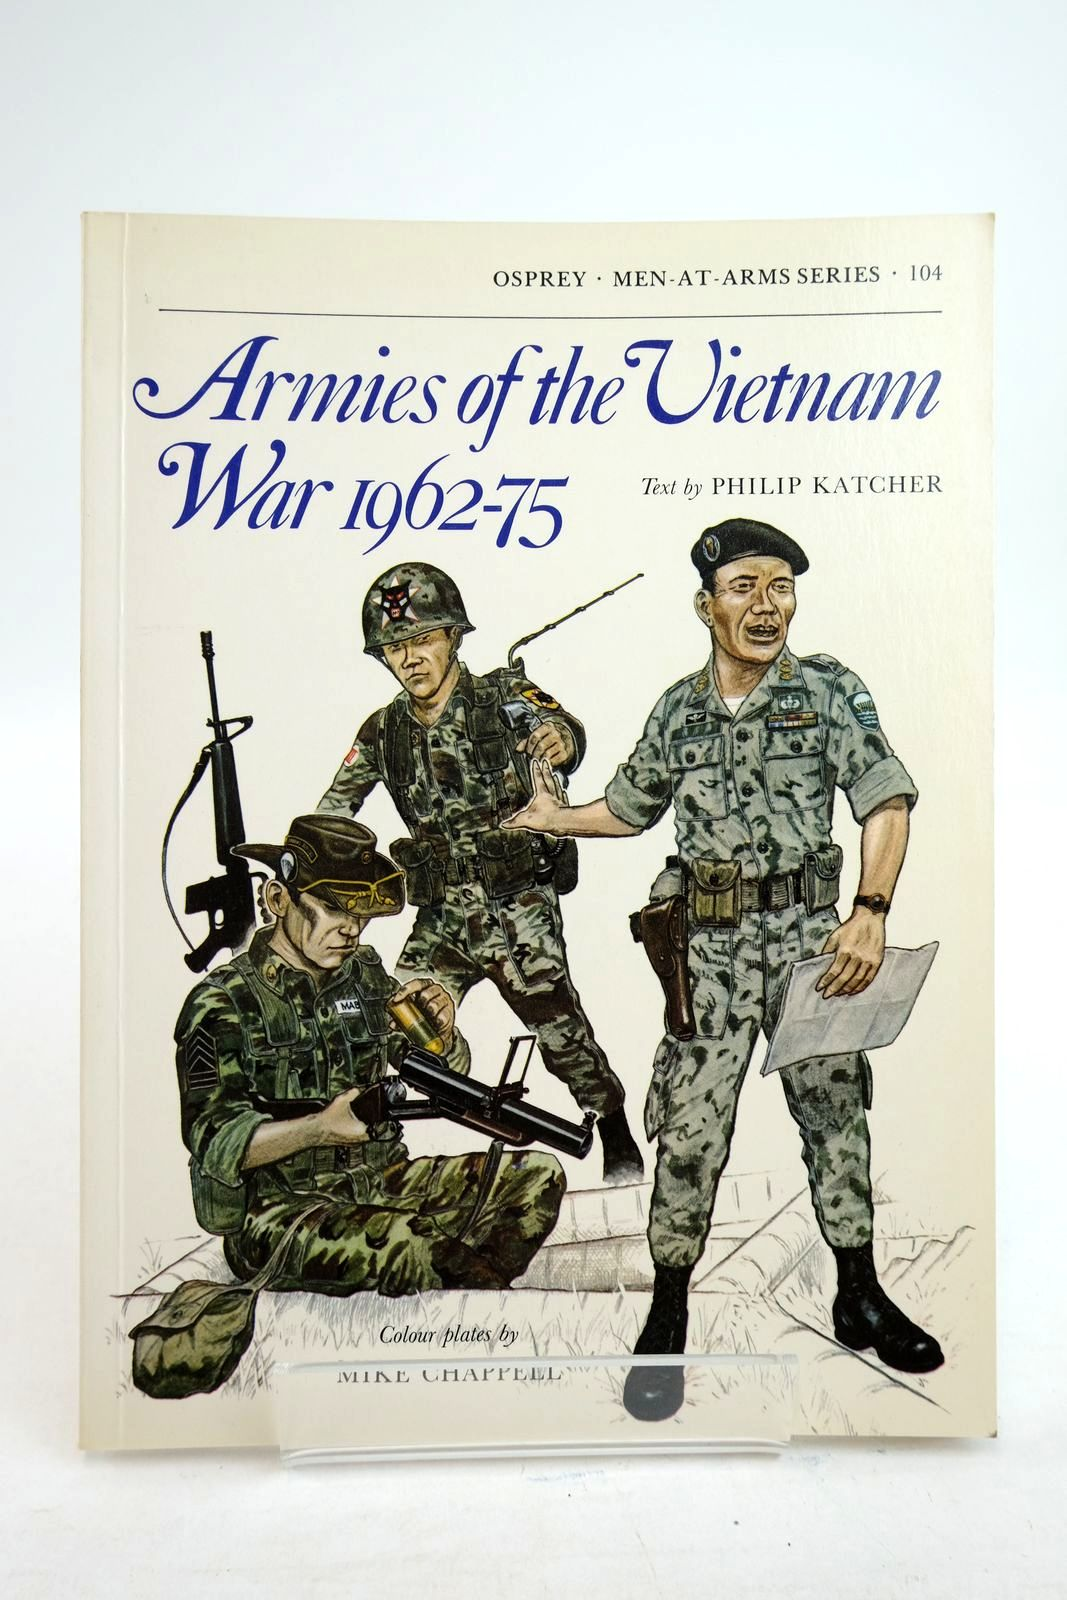 Photo of ARMIES OF THE VIETNAM WAR 1962-75 (MEN-AT-ARMS) written by Katcher, Philip illustrated by Chappell, Mike published by Osprey Publishing (STOCK CODE: 2134734)  for sale by Stella & Rose's Books